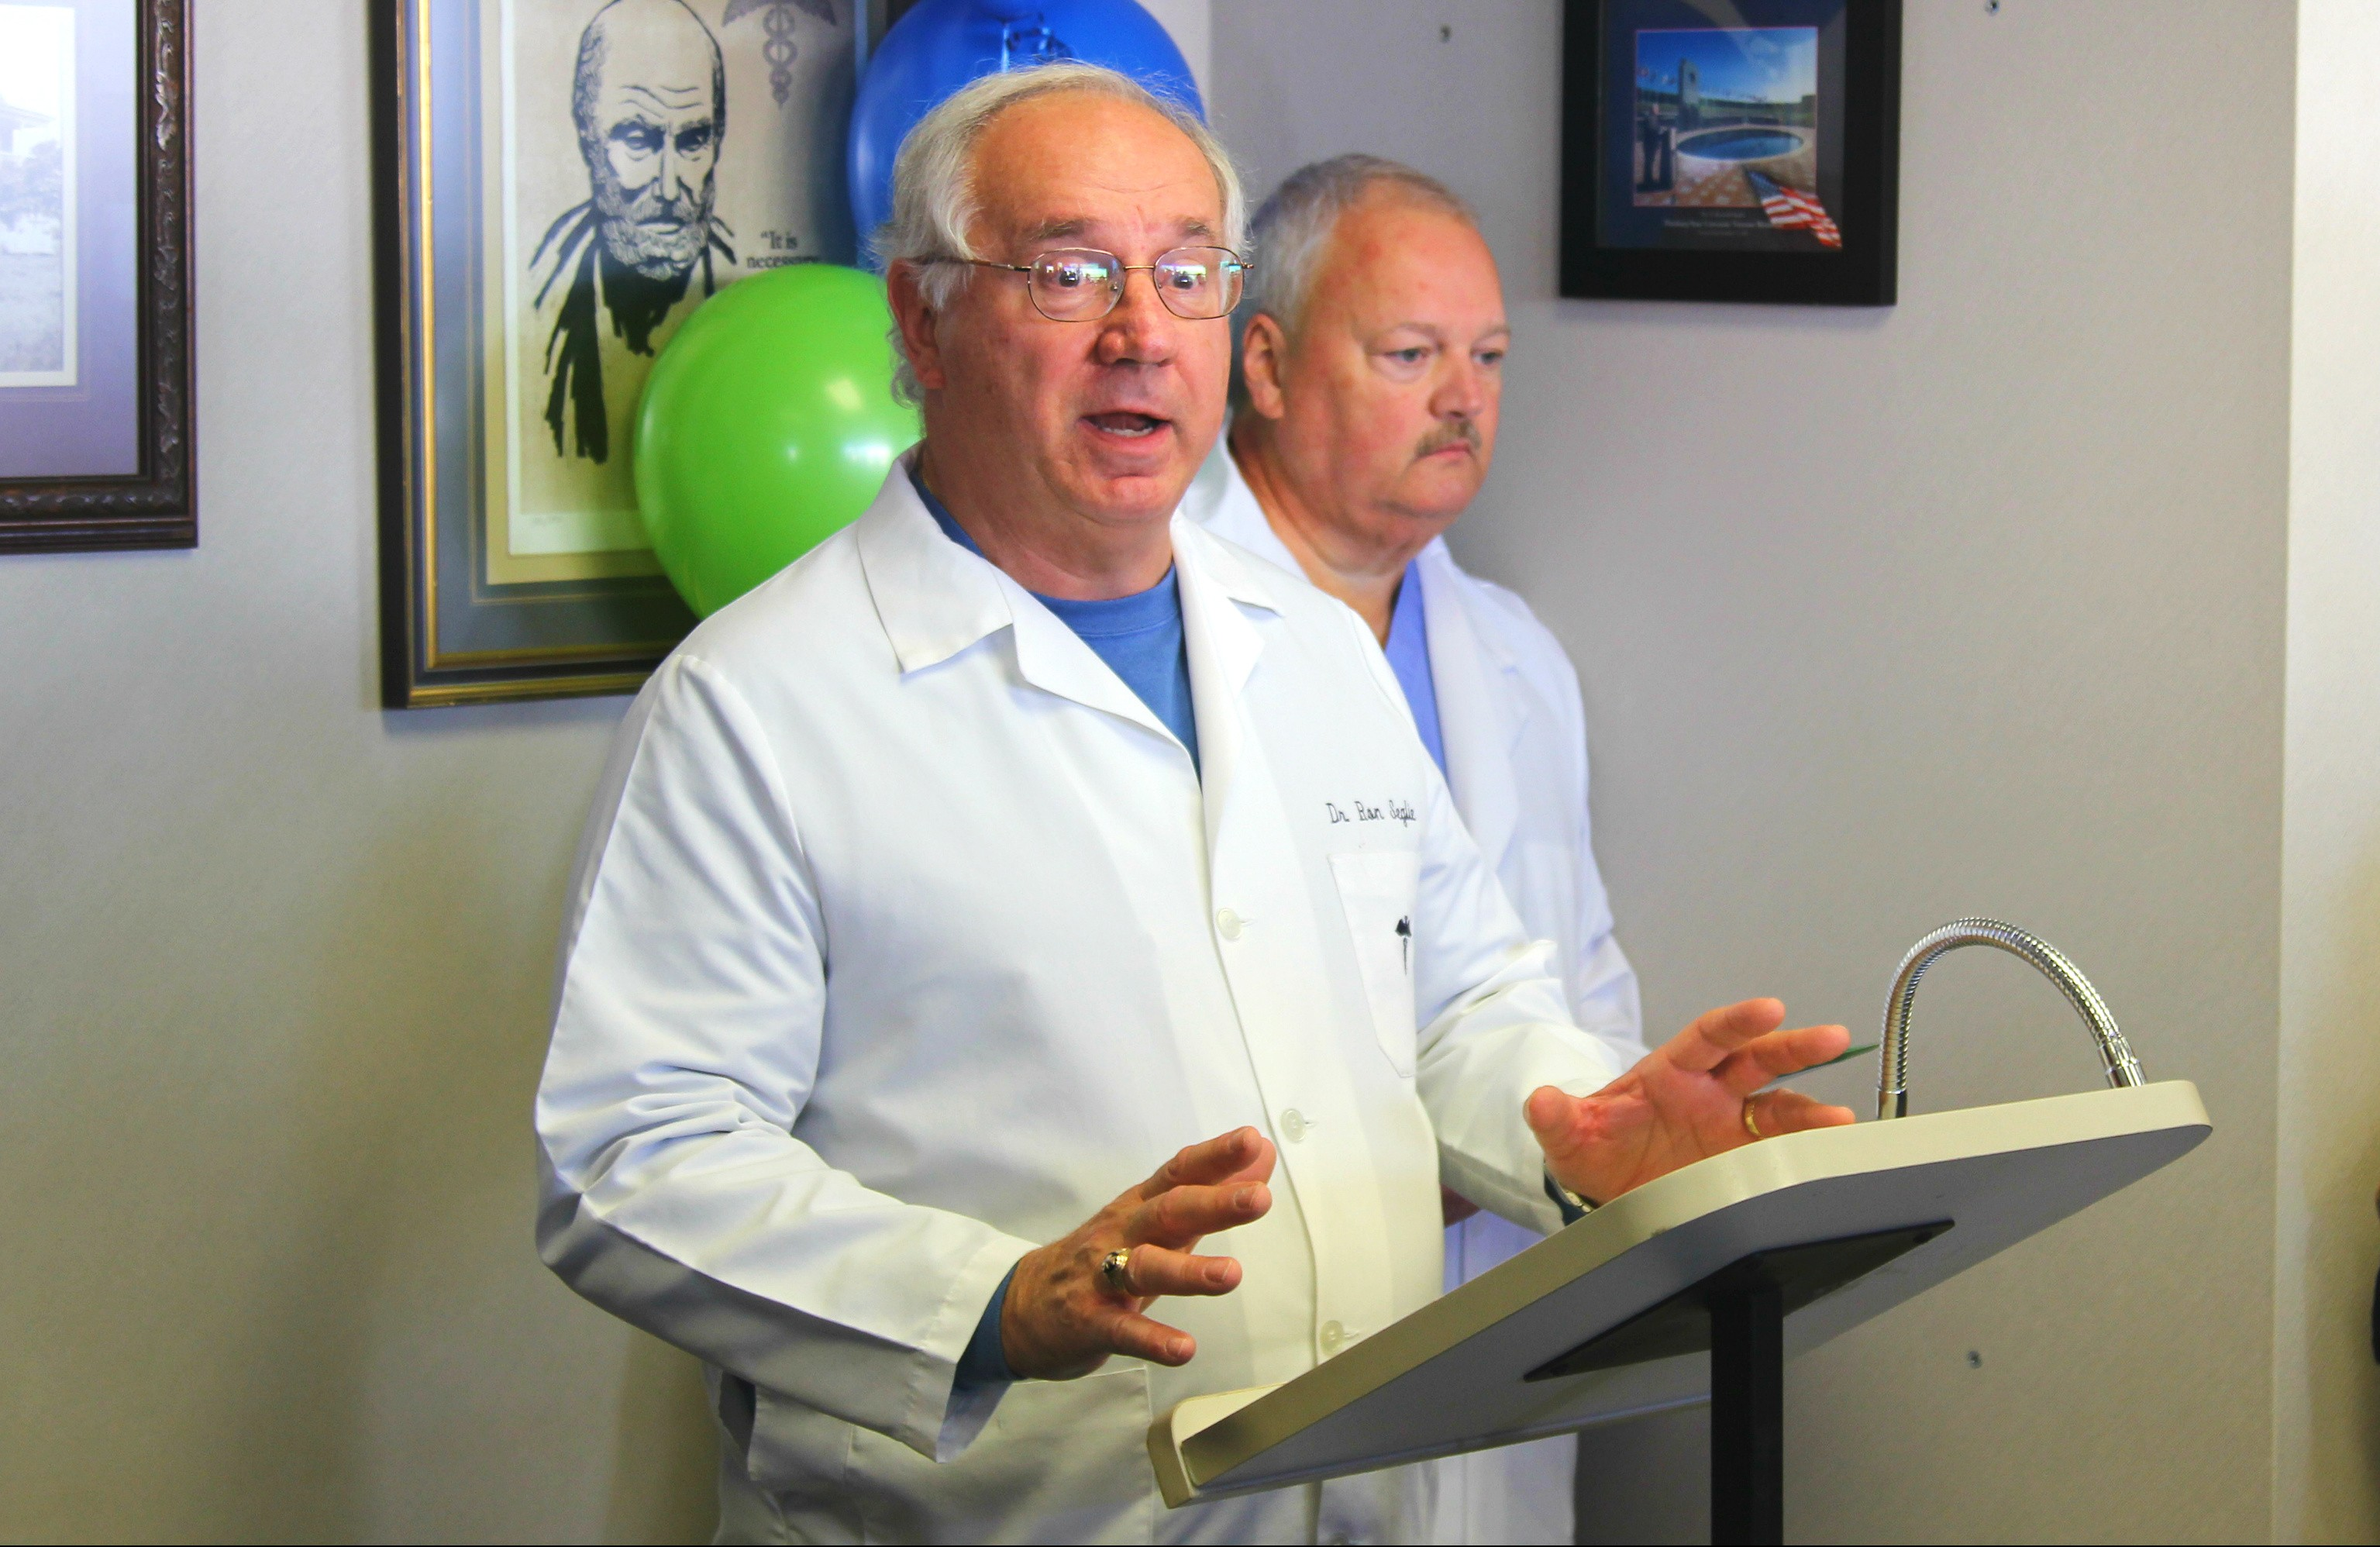 Dr. F. Ron Seglie welcomes dignitaries for the ribbon cutting of the Via Christi Mercy Clinic temporary location in Pittsburg. Behind Dr. Seglie is Dr. Kent Coltharp, a second doctor at the clinic.